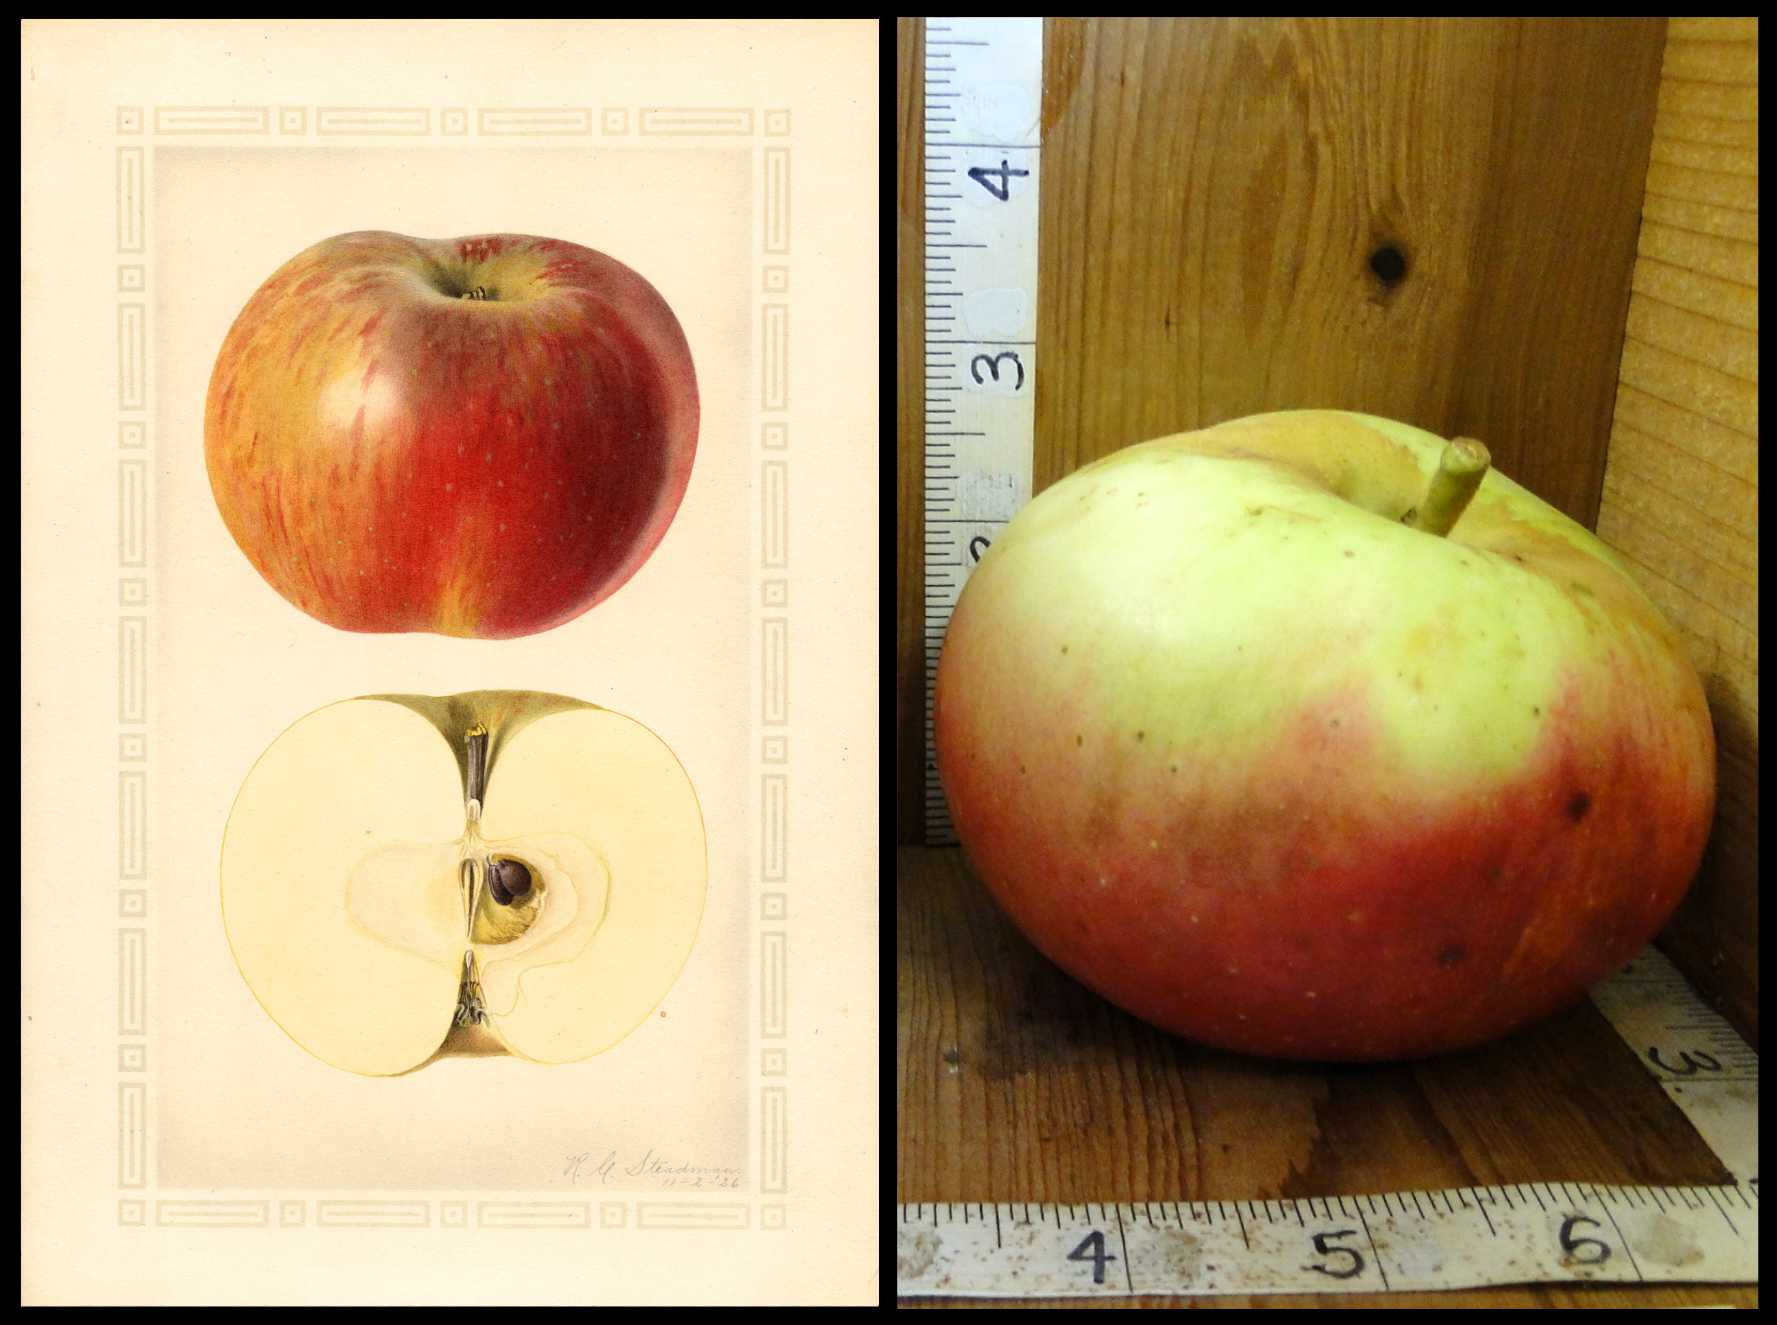 very pale yellow apple with dark red blush on the bottom half of the fruit